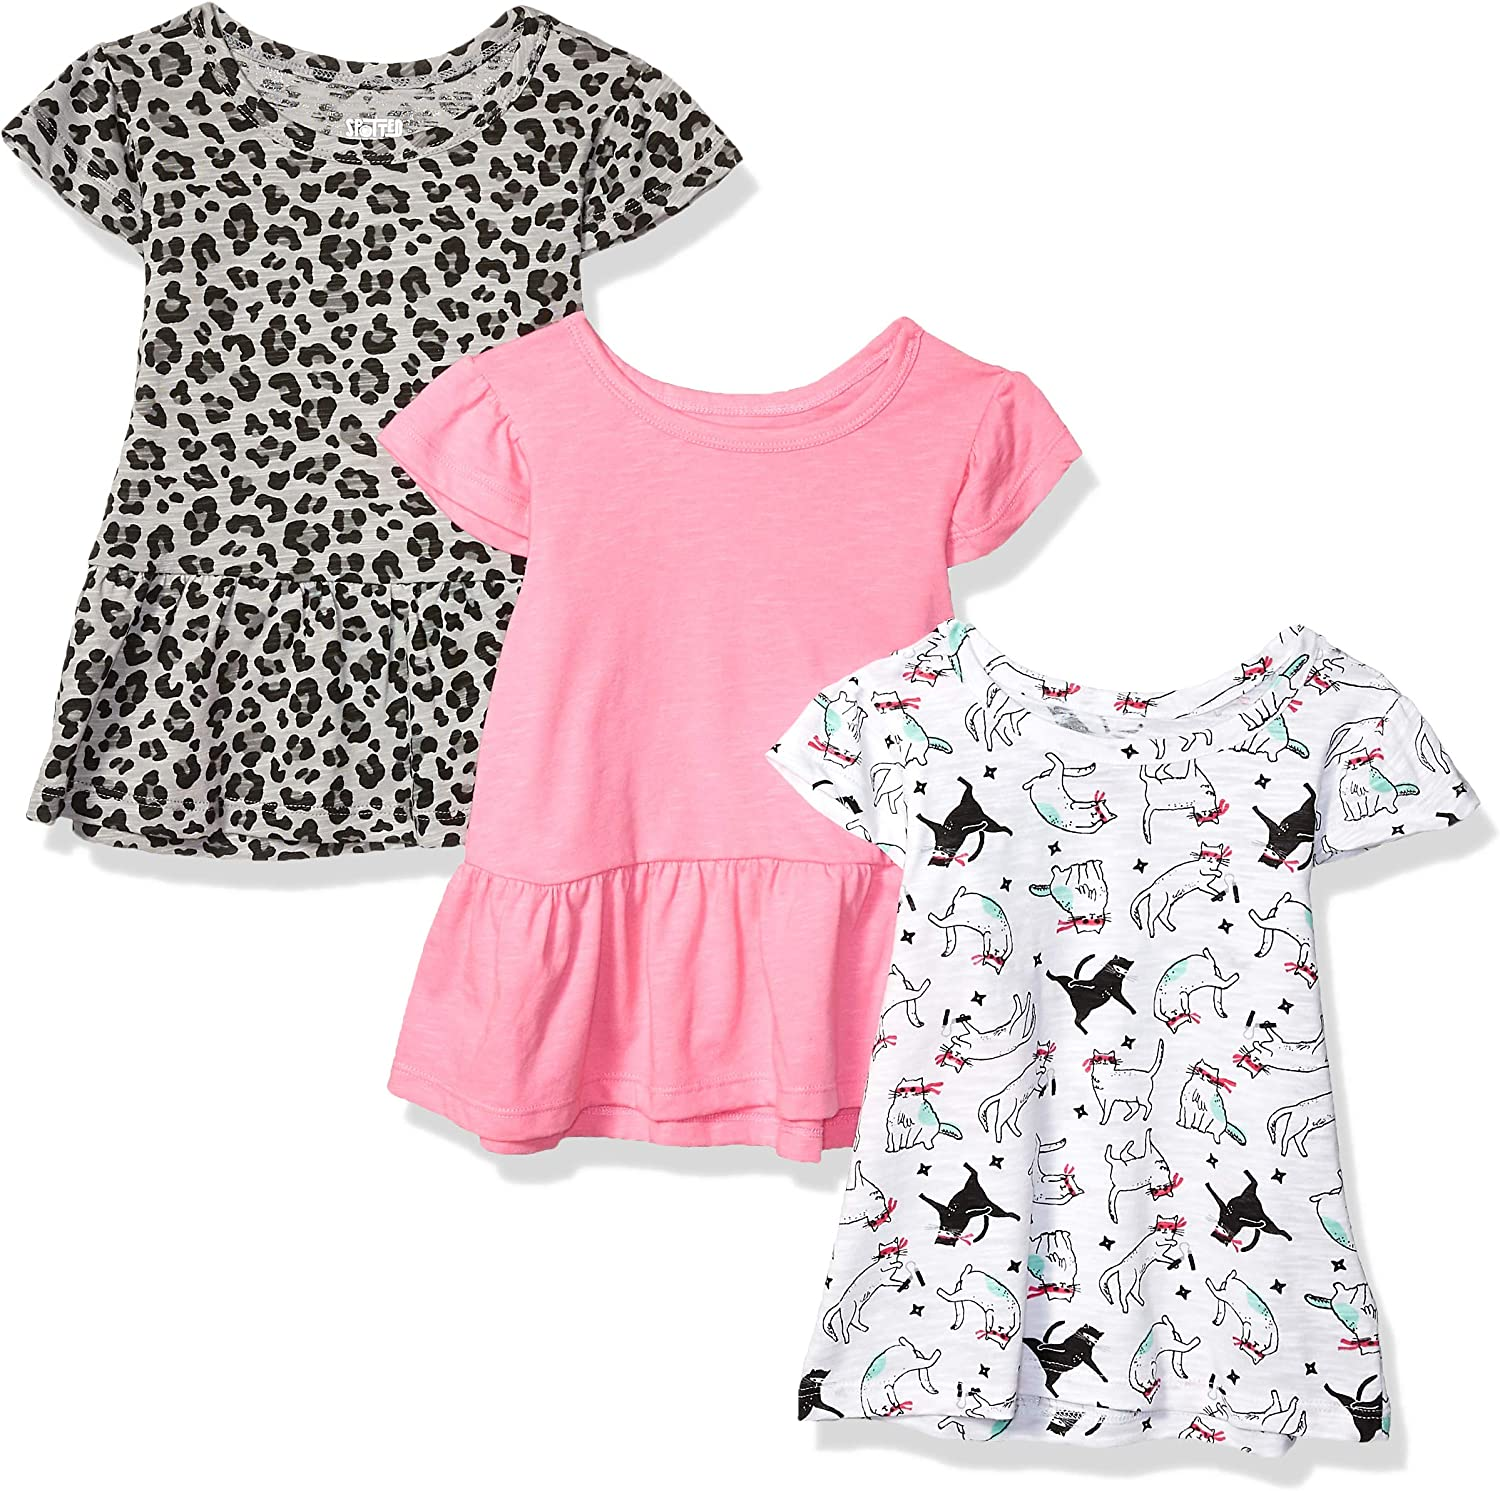 Spotted Zebra Girls Toddler /& Kids 3-Pack Short-Sleeve Ruffle Tops Brand